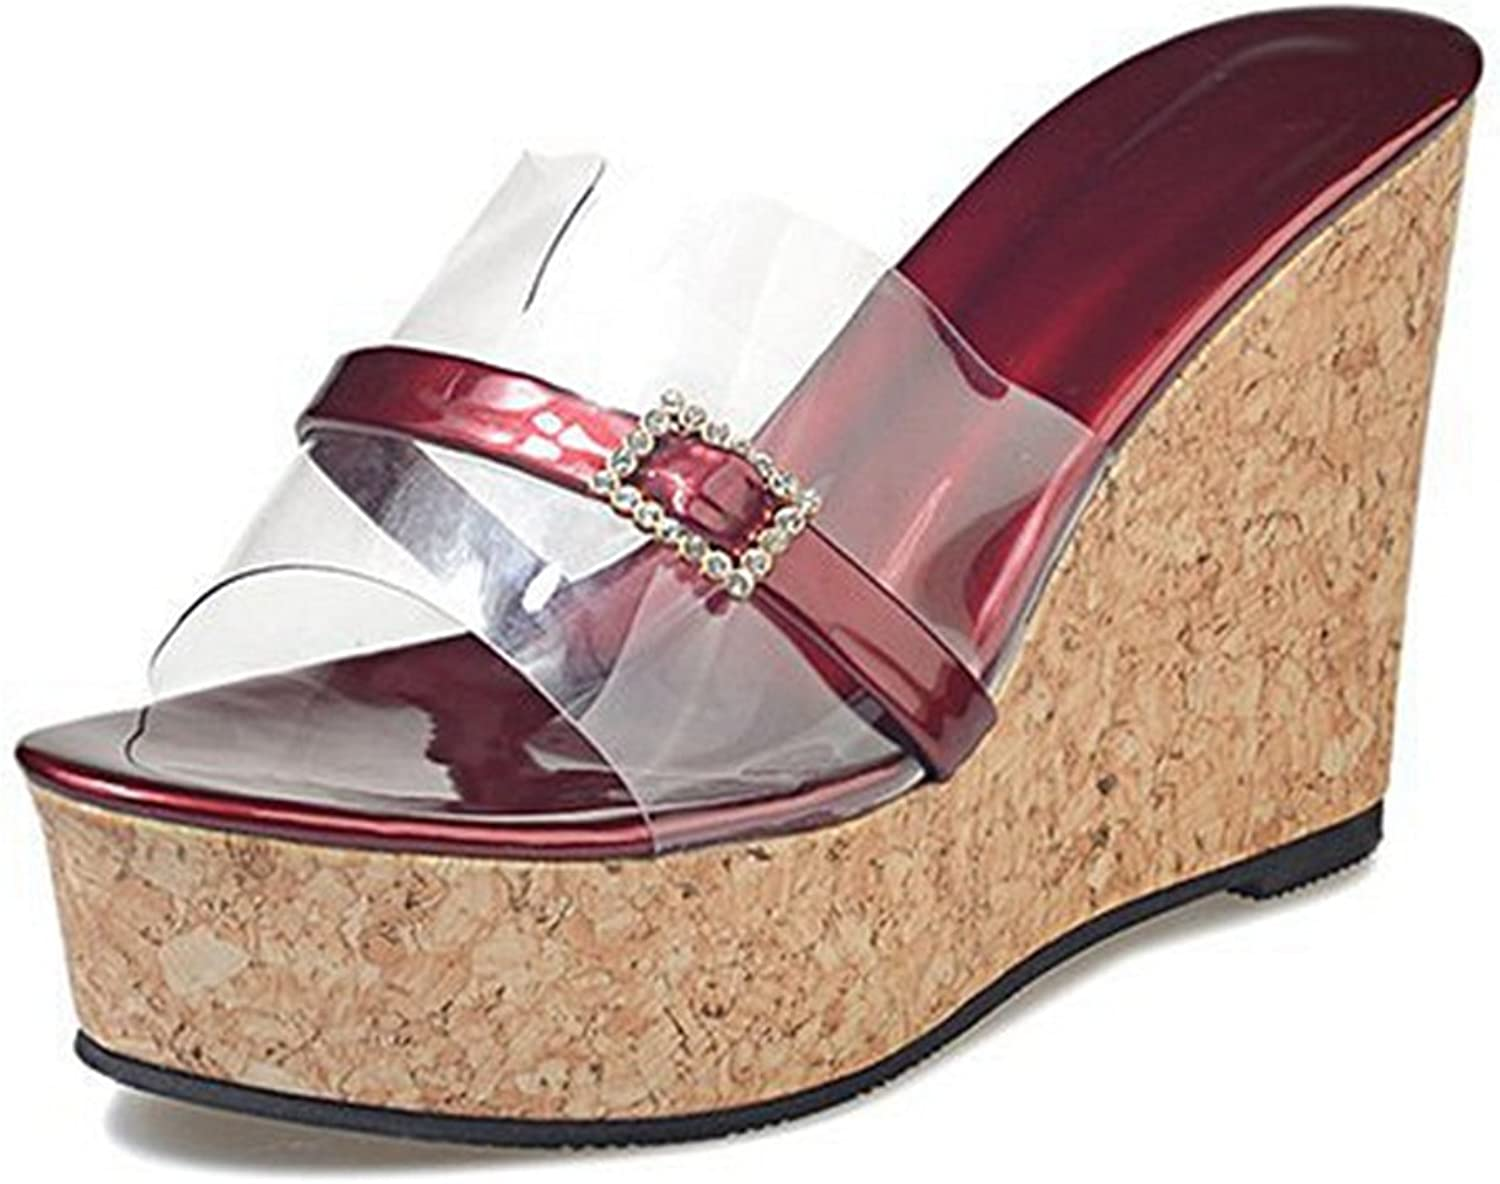 CYBLING Women's Open Toe High Wedge Slide Sandals Platform Cork Heel Flip Flop Slipper shoes